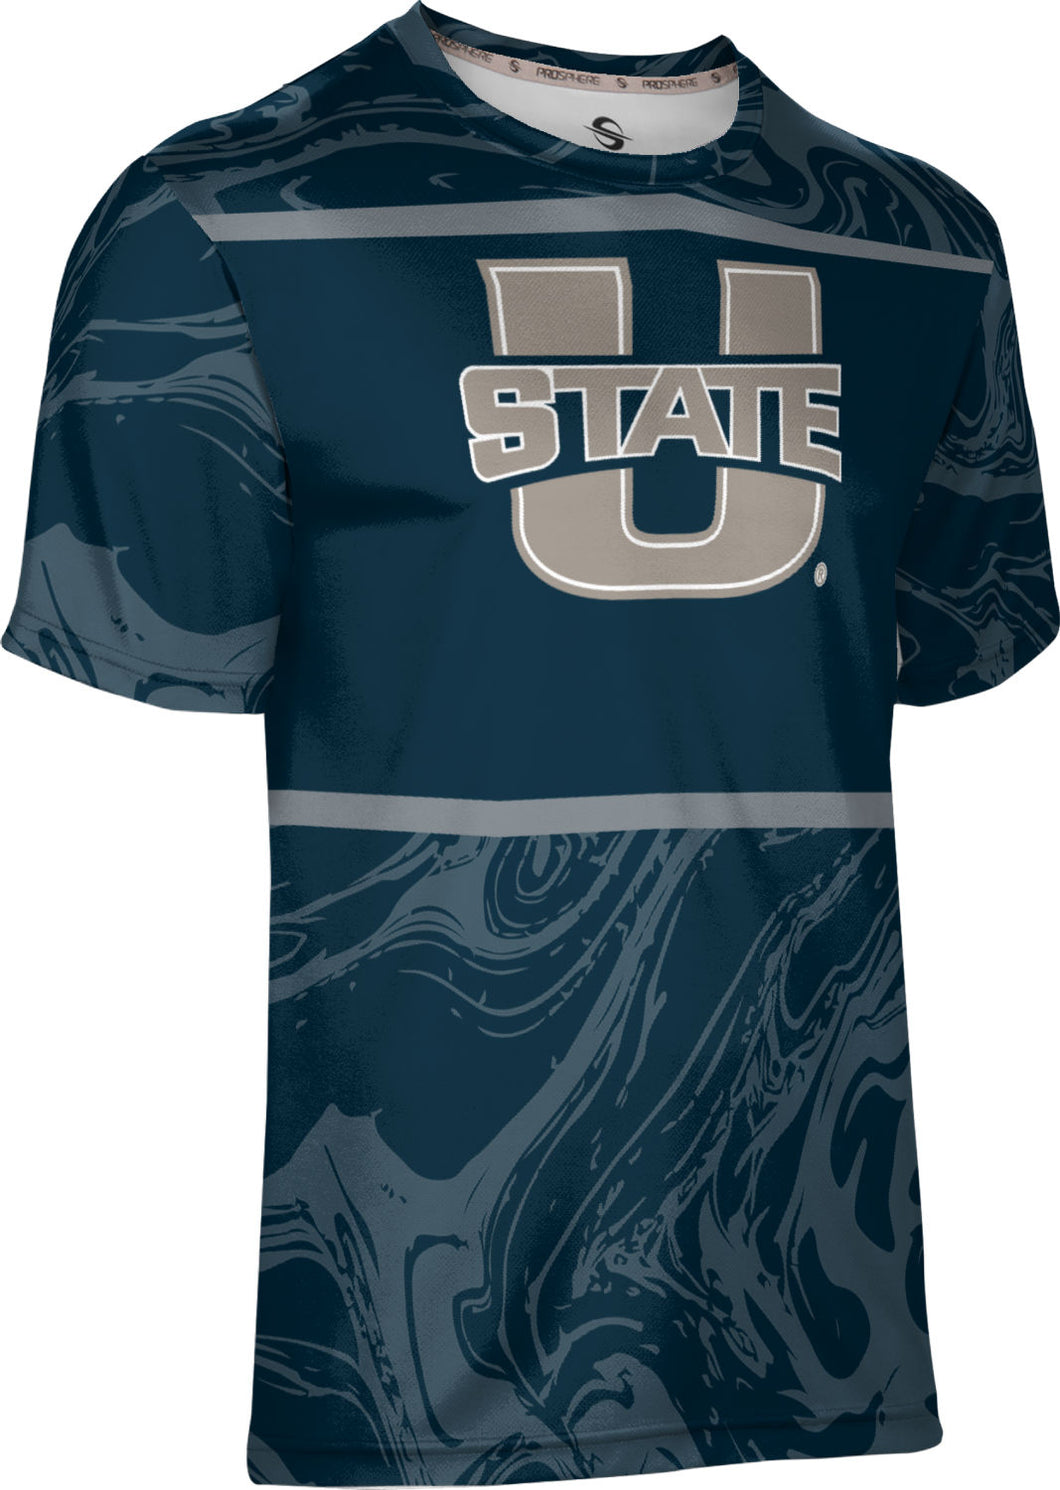 Utah State University: Men's T-shirt - Ripple